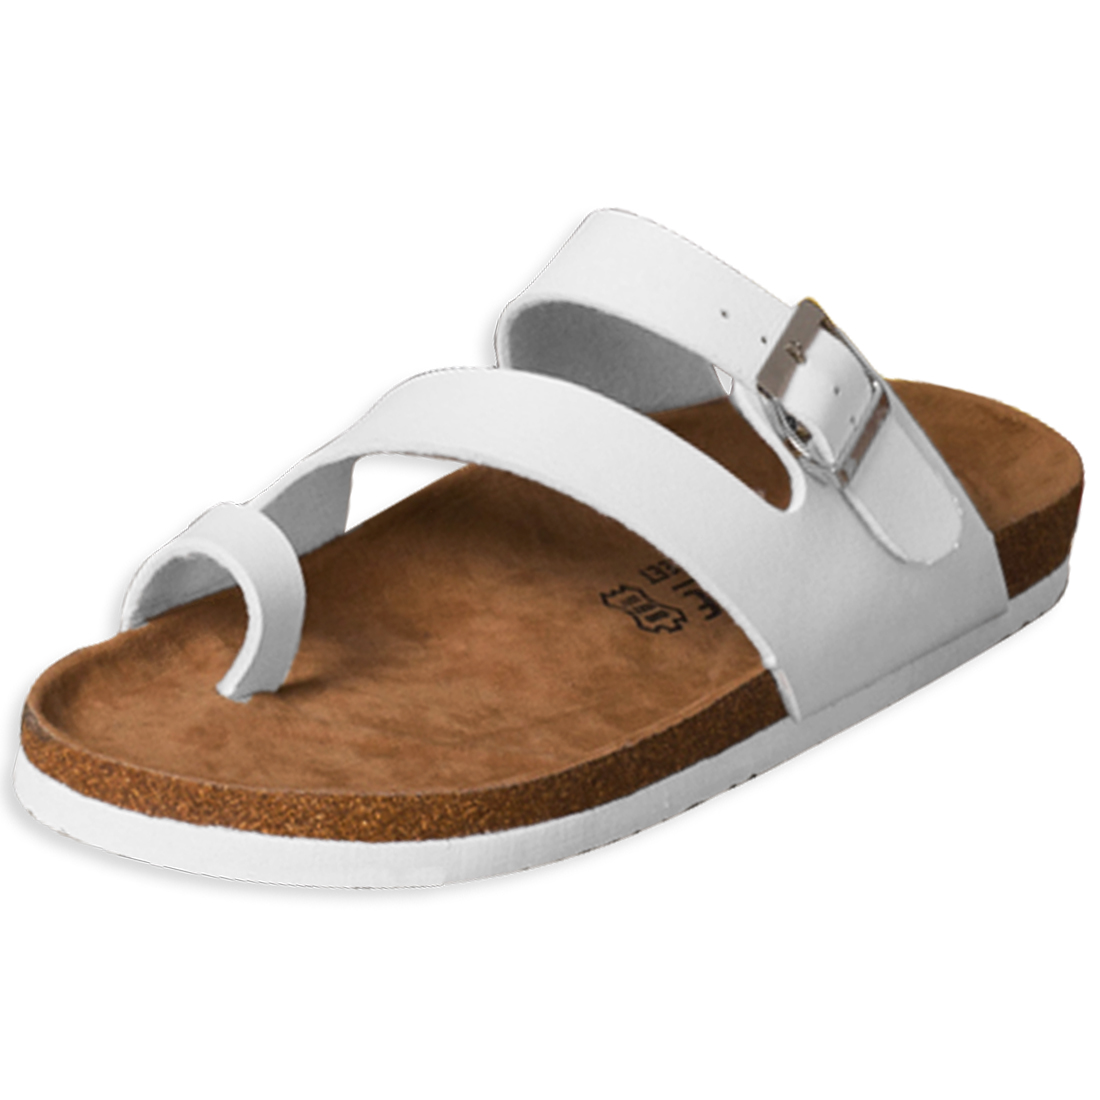 Men & Women Toe Loop Stylish Buckled White Sandals US 6